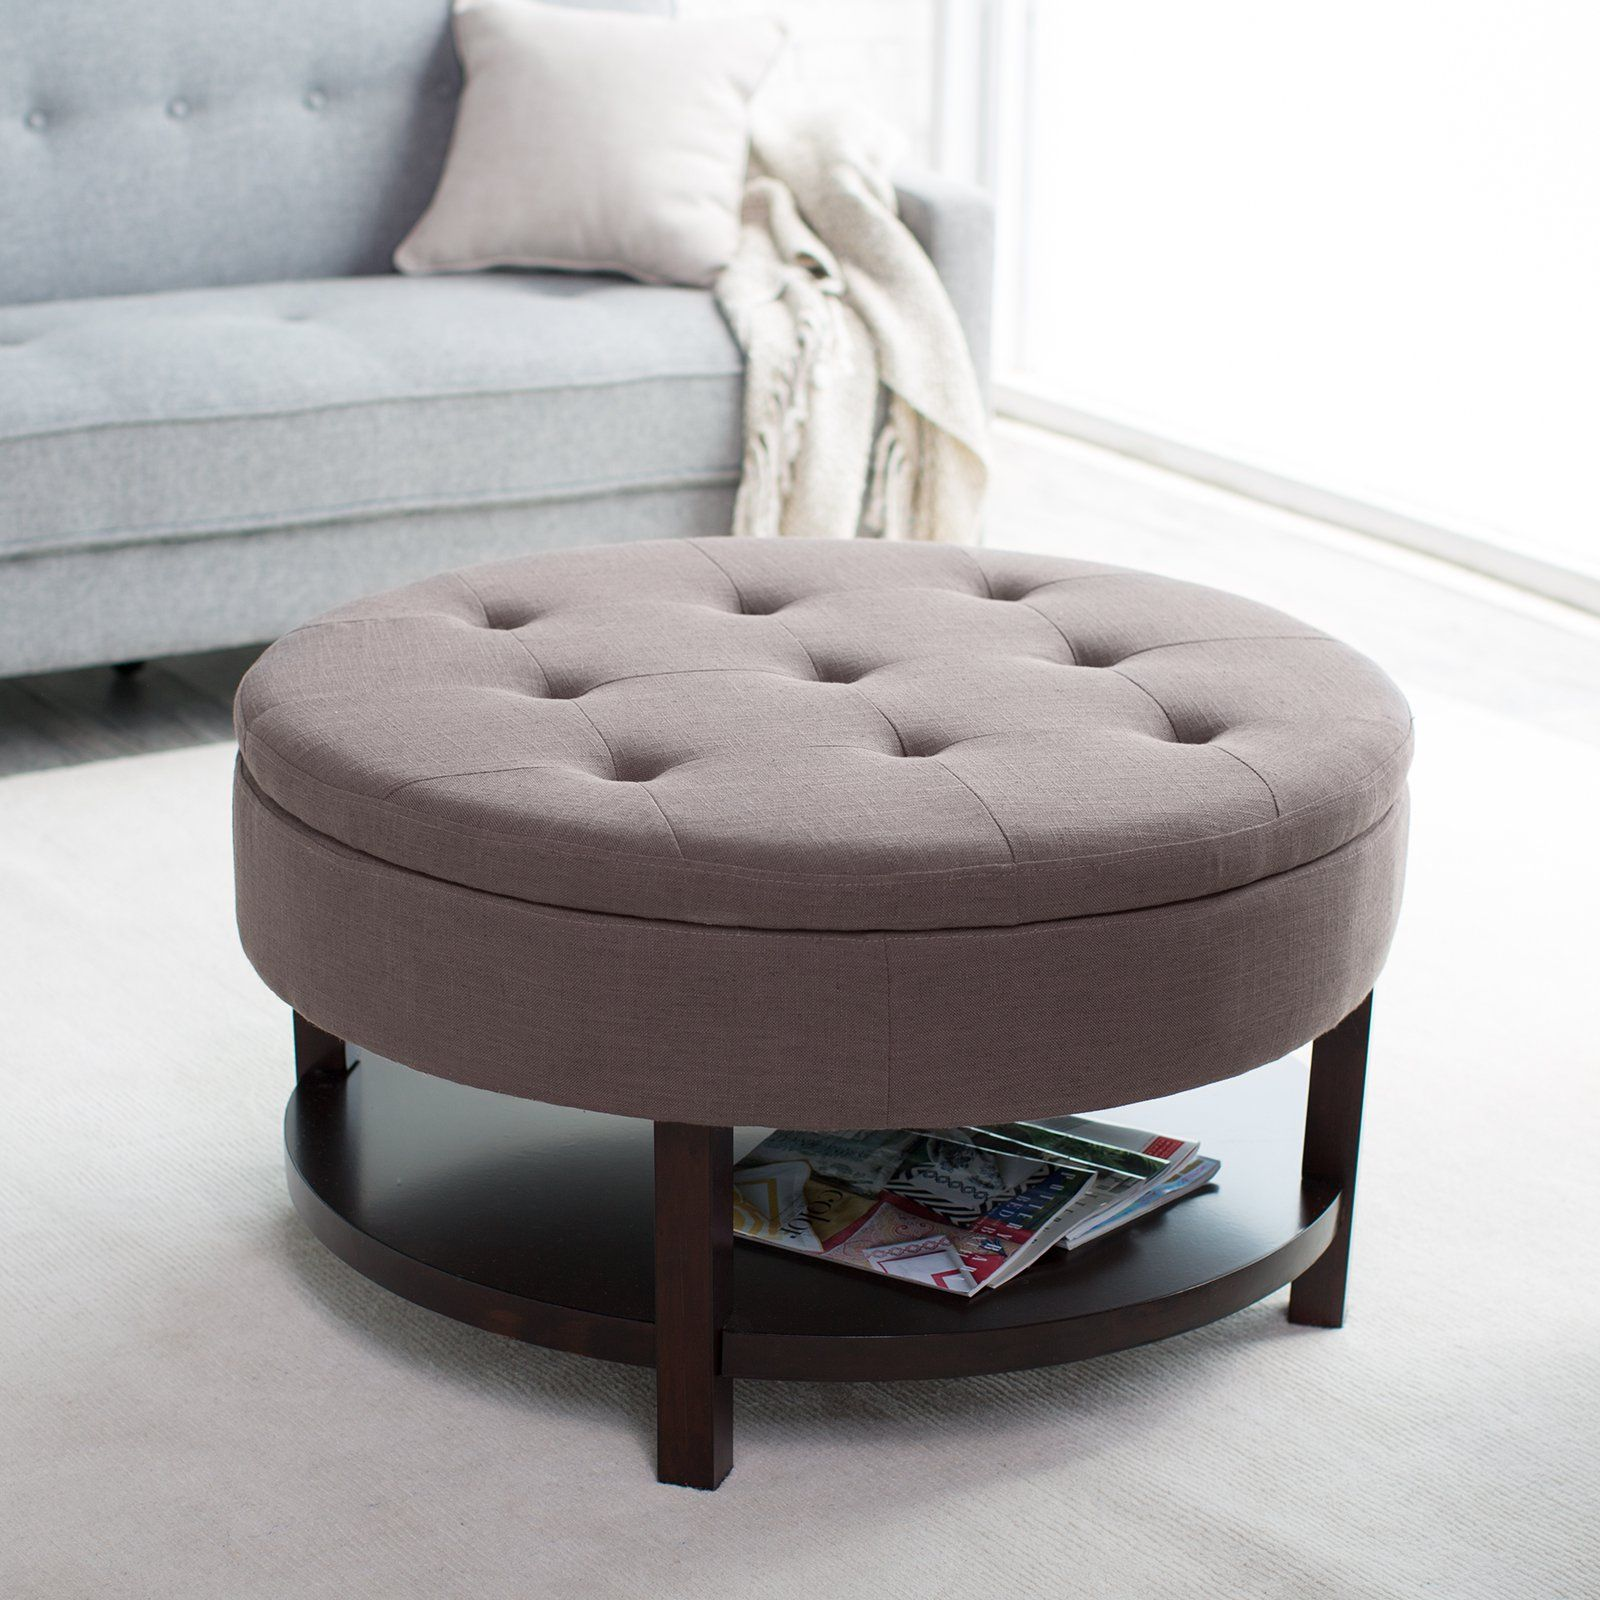 Belham Living Coffee Table Storage Ottoman With Shelf Chocolate In A Small Space You Need